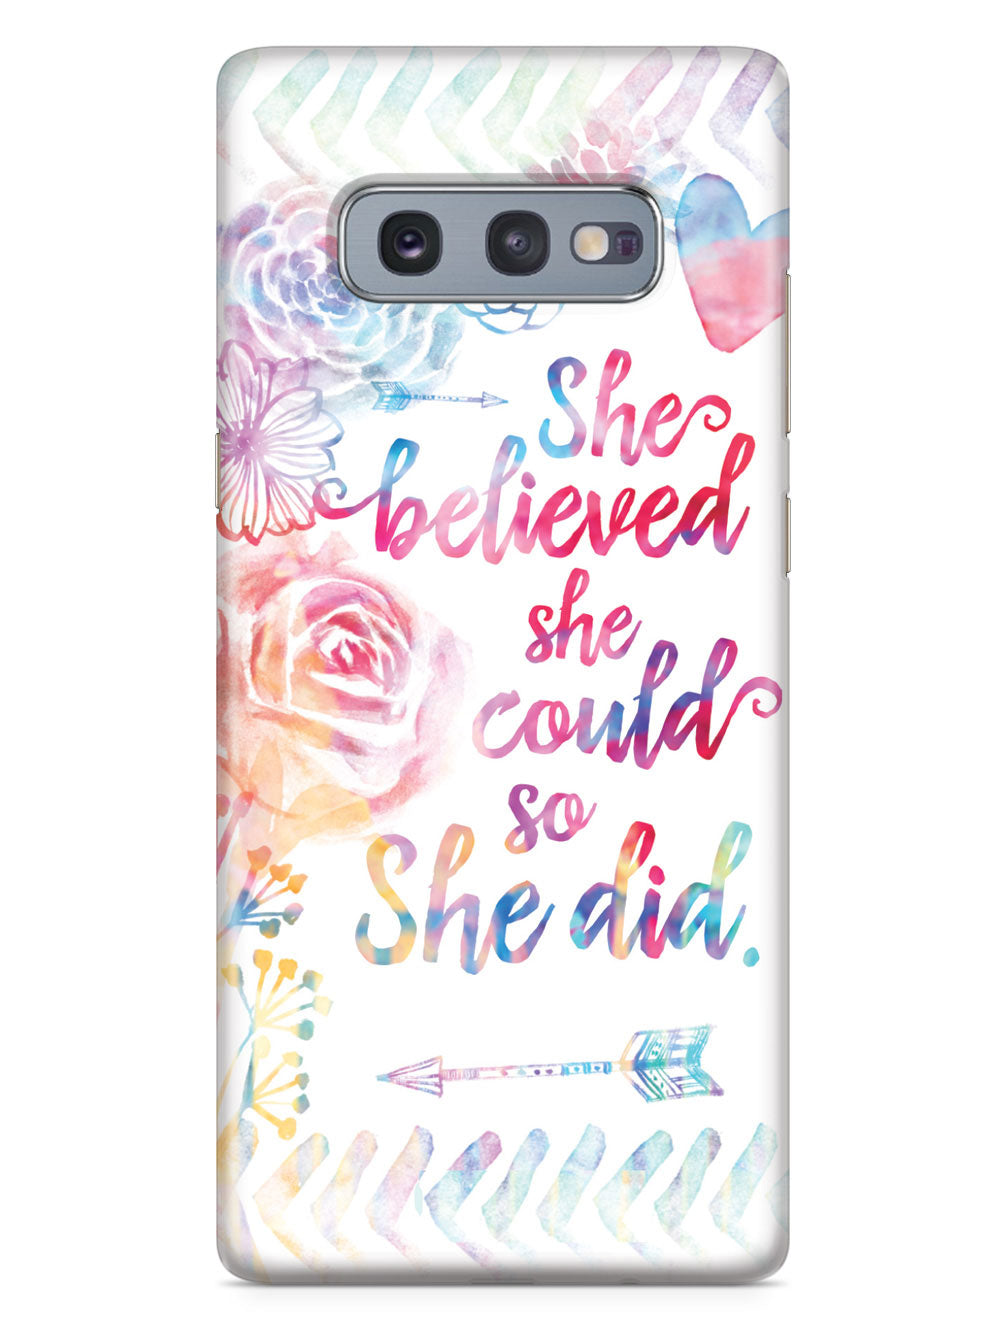 So She Did - White Case